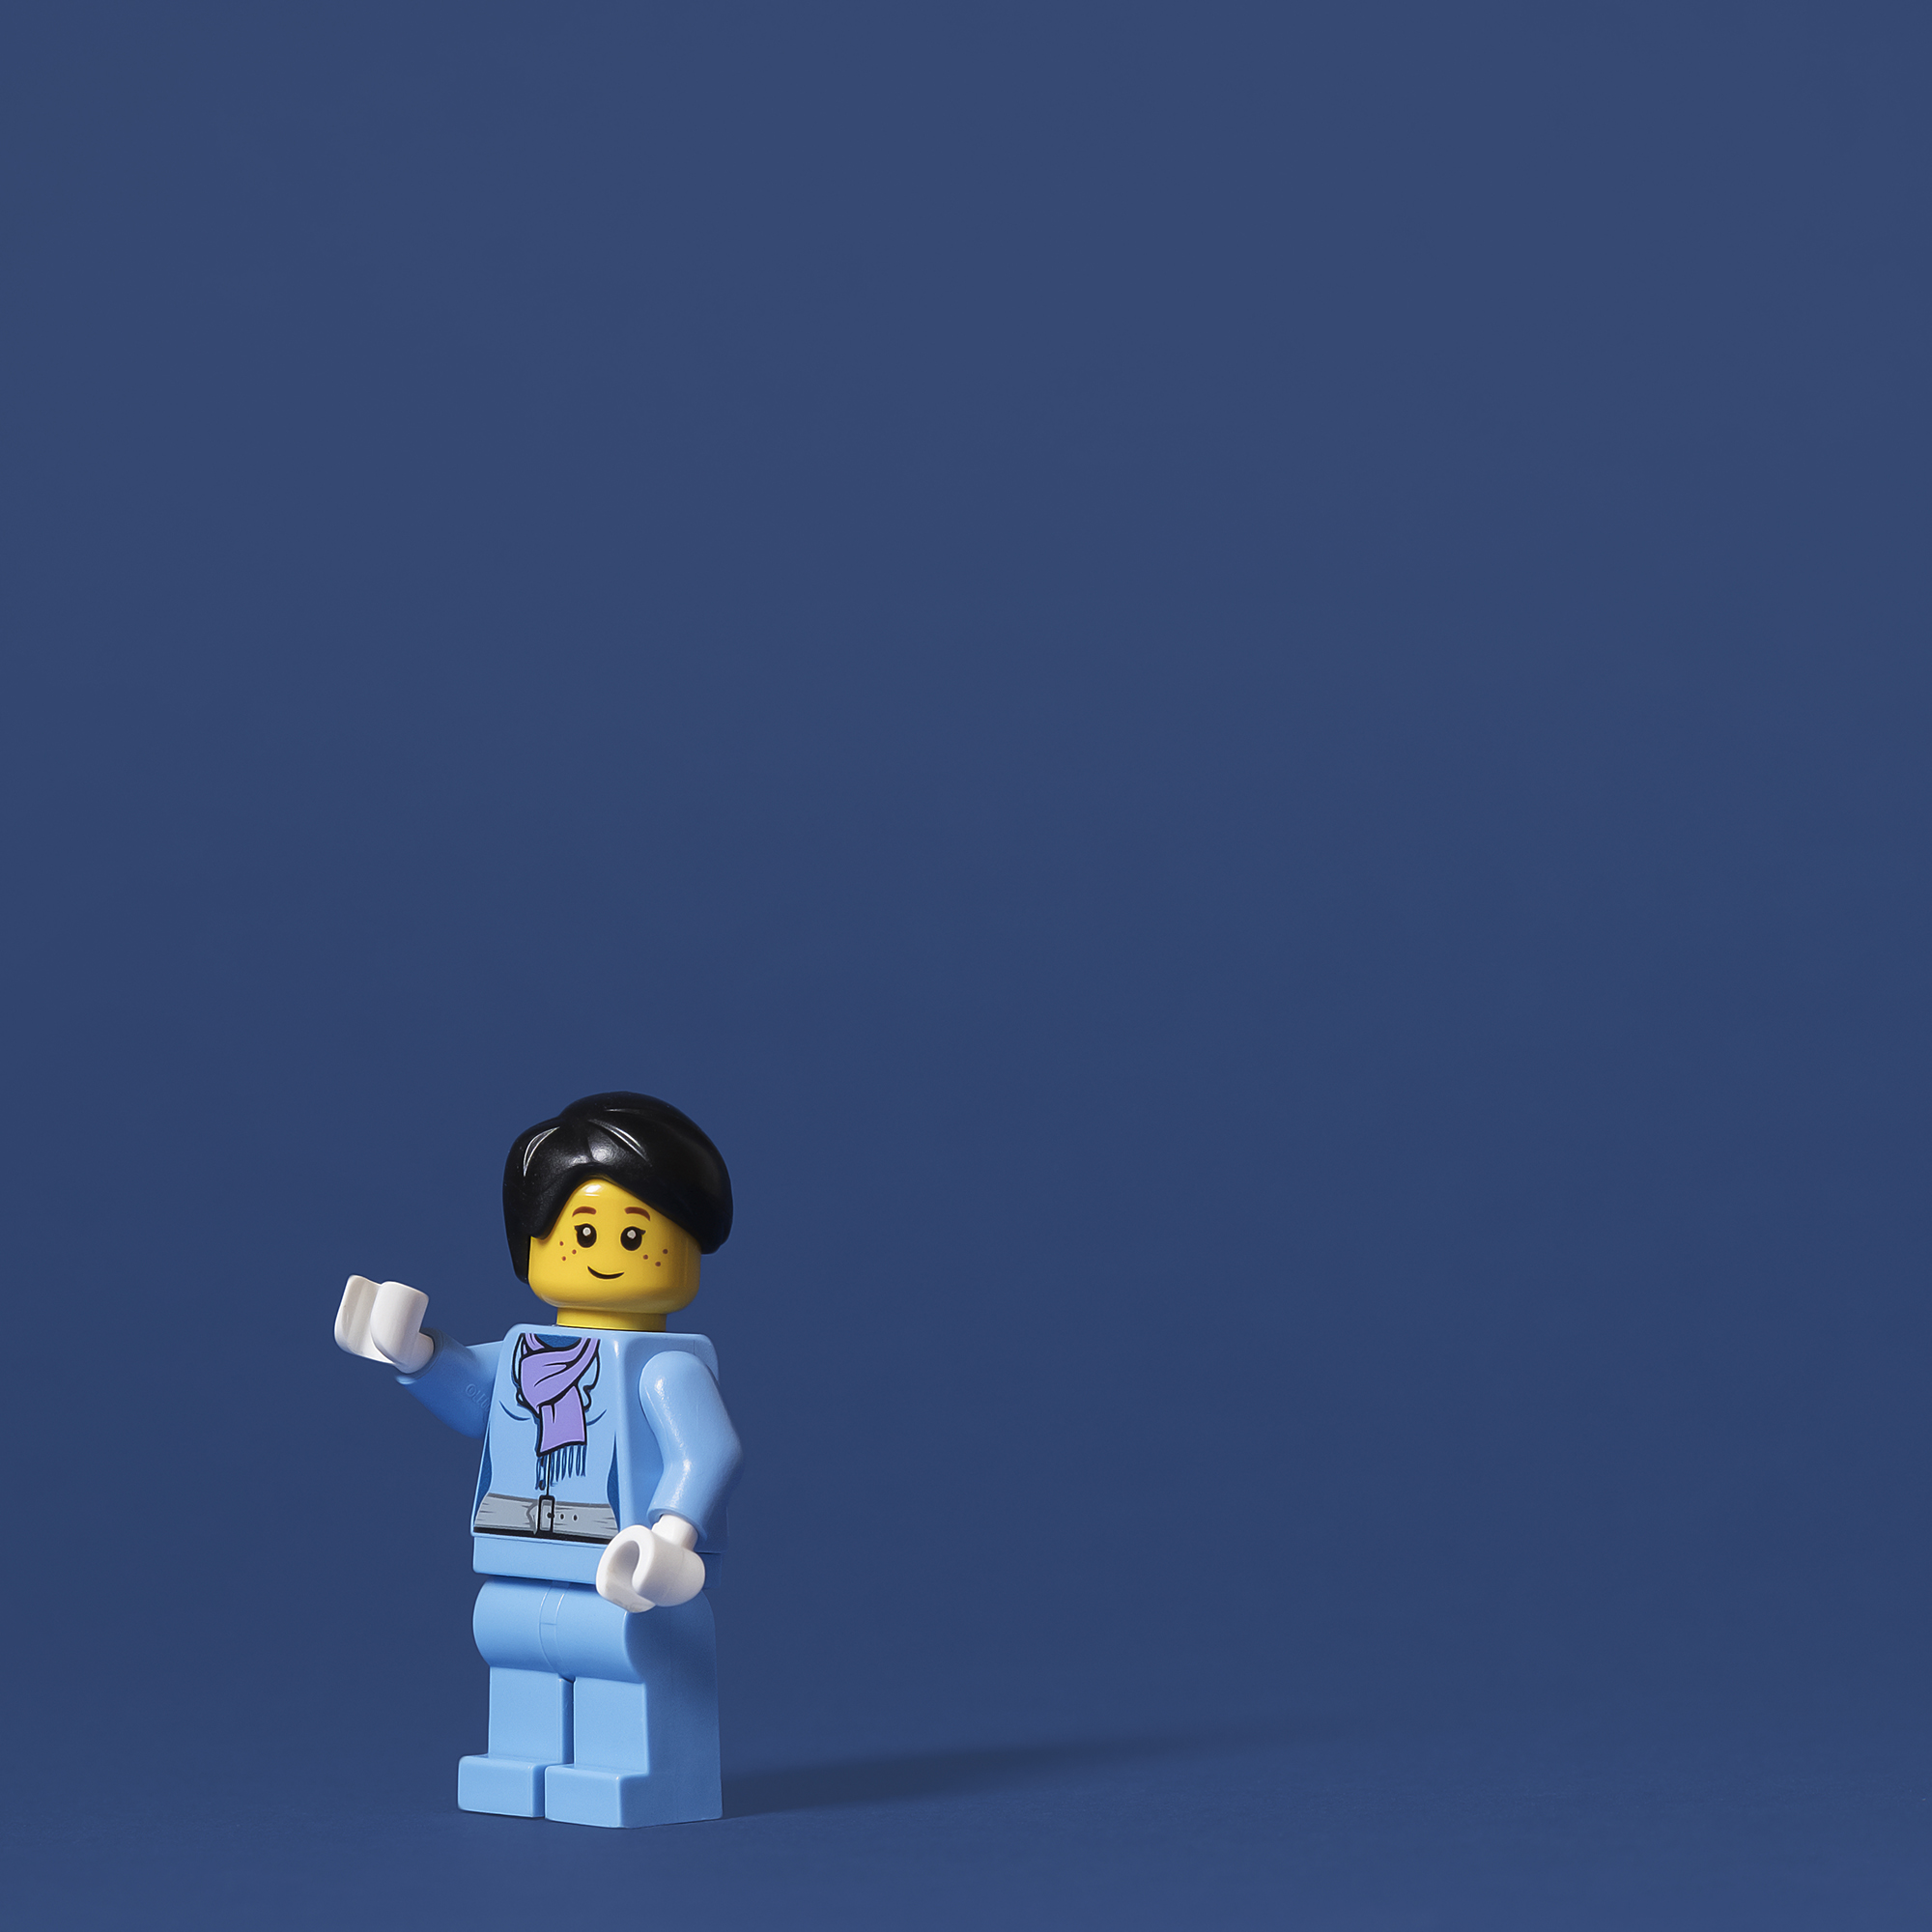 Lego_Photography_Personal_Project_05.jpg